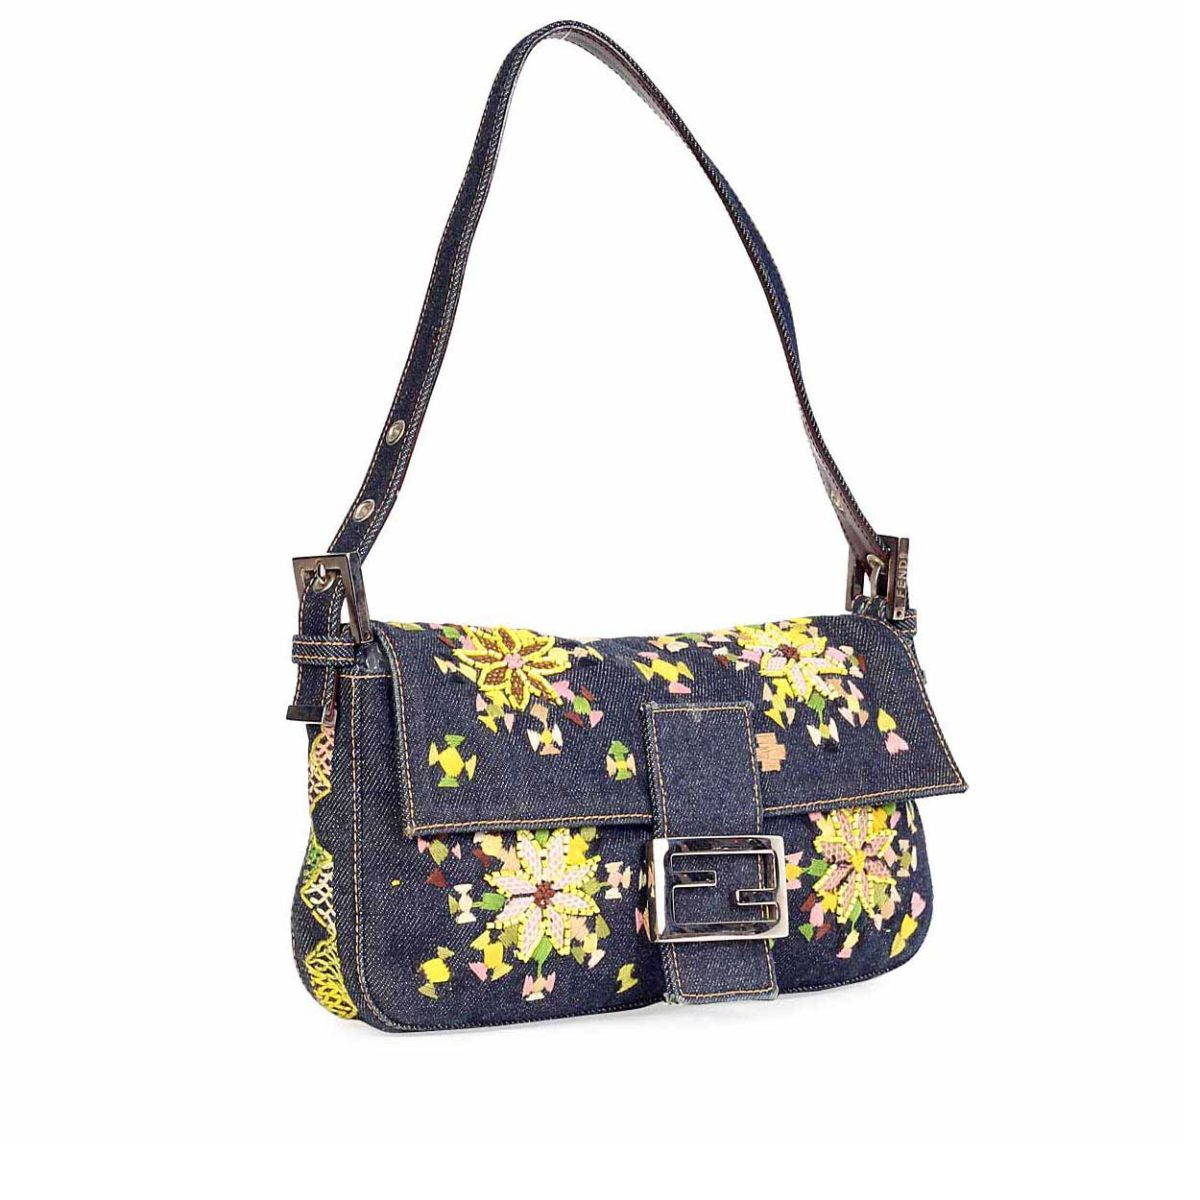 FENDI Denim Baguette with Floral Embroidery   Beads  0178293ca1af7